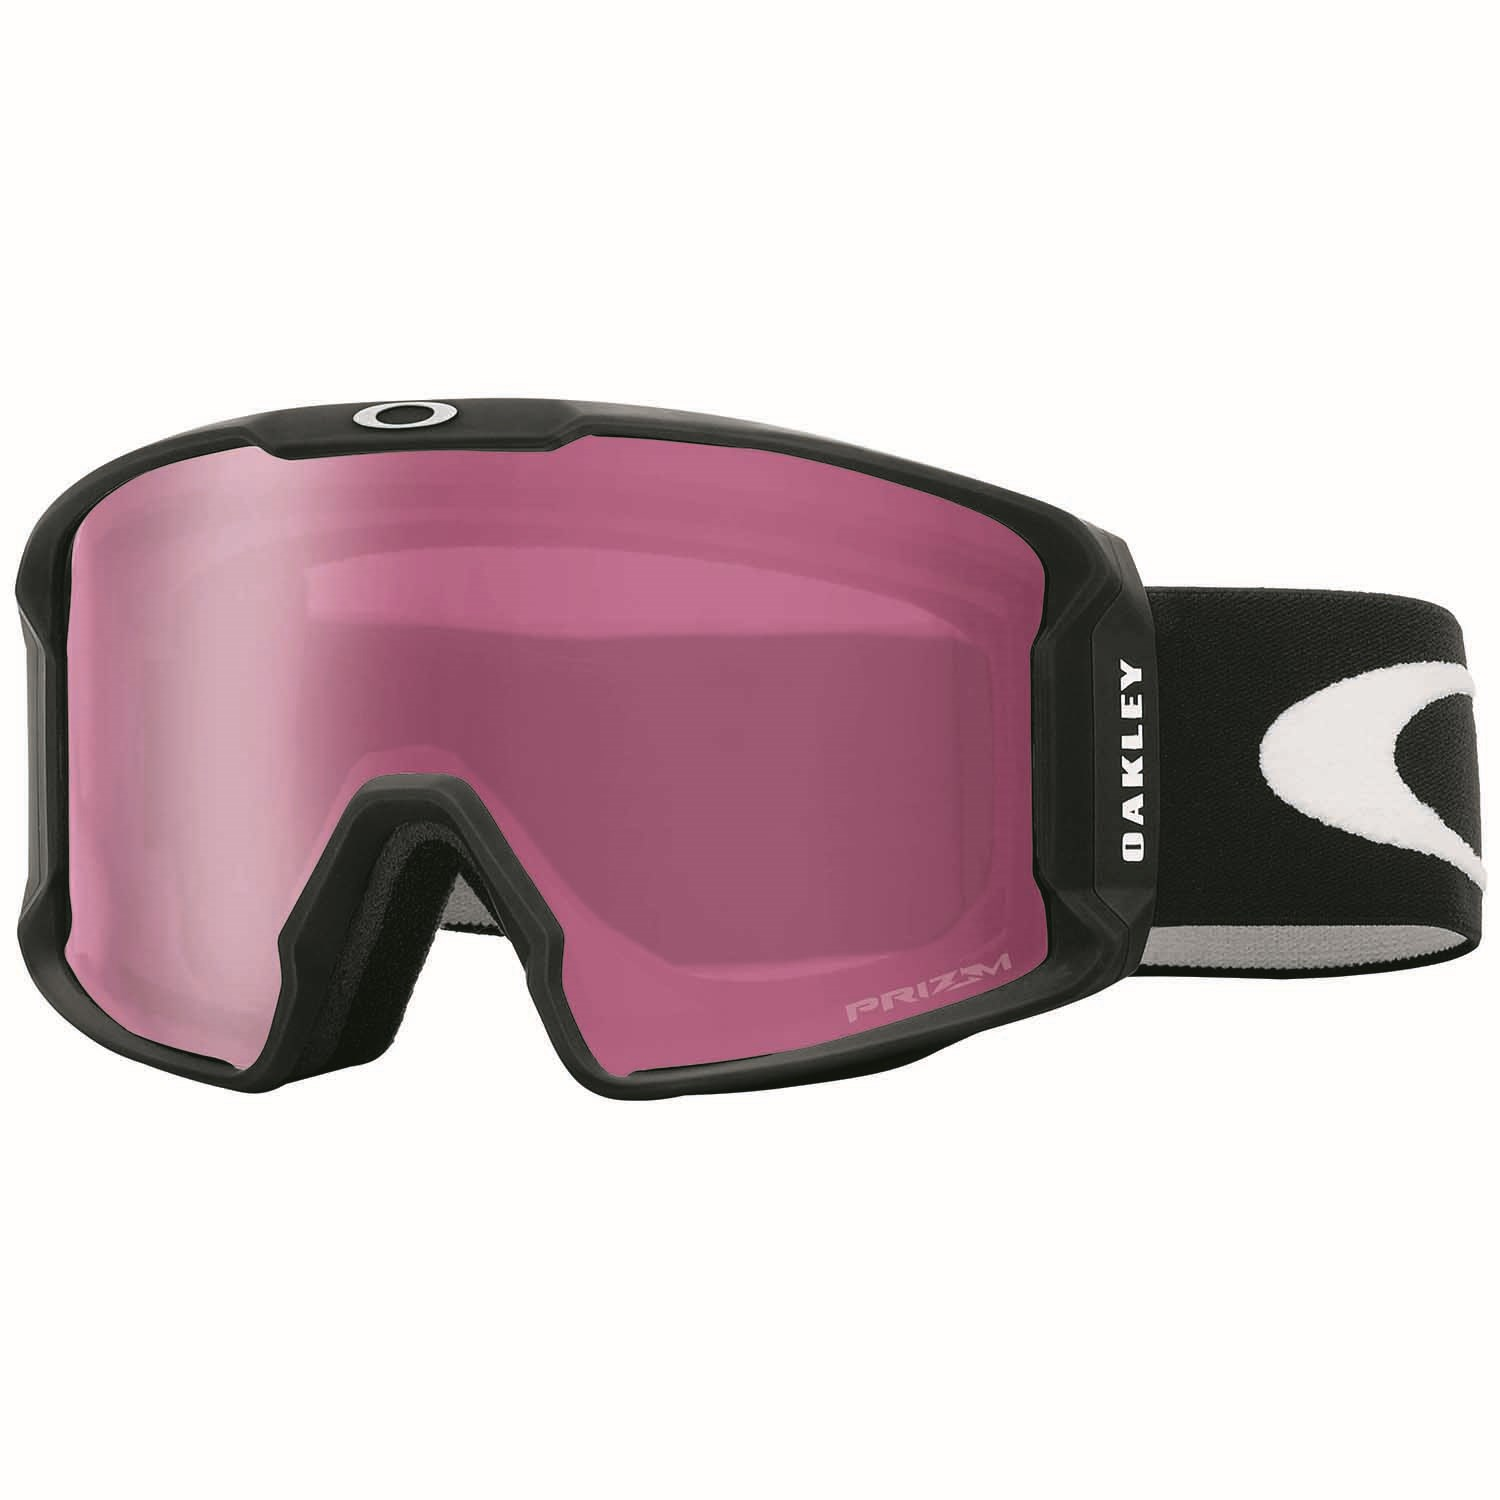 oakley goggles for sale  oakley line miner inferno goggles $220.00 $250.00 $165.99 $187.99 sale